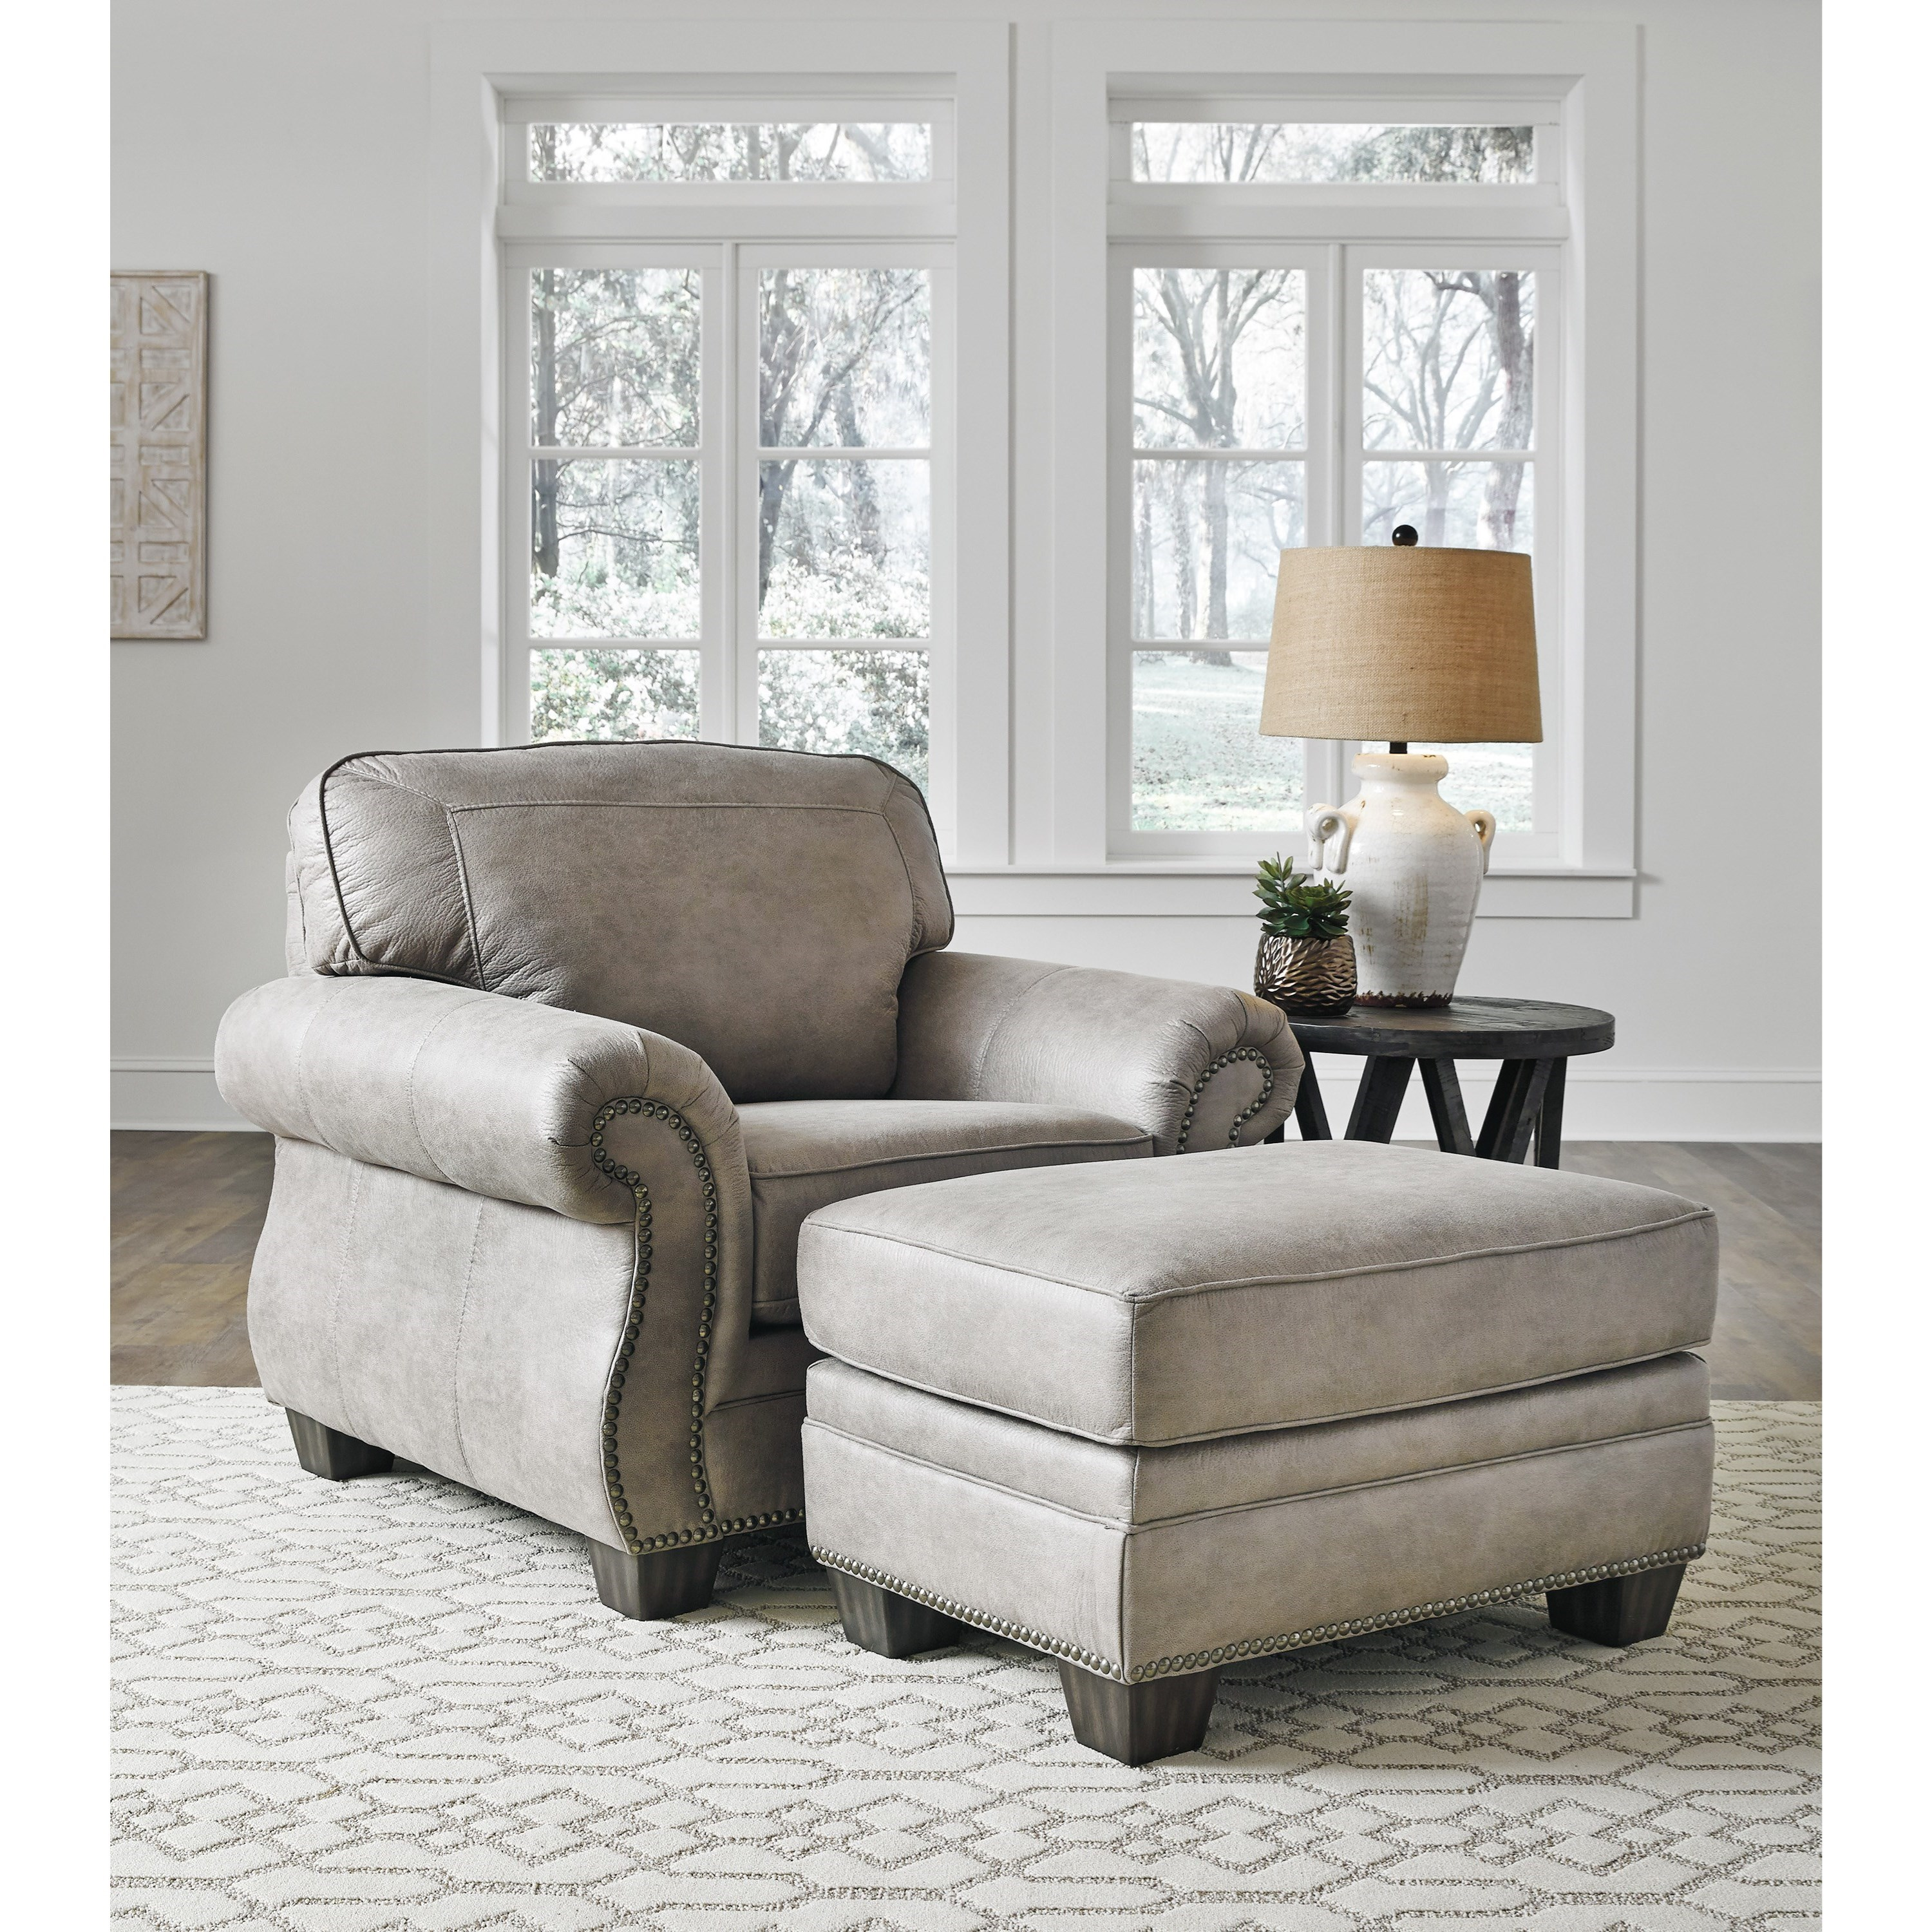 Olsberg Chair and Ottoman by Signature at Walker's Furniture